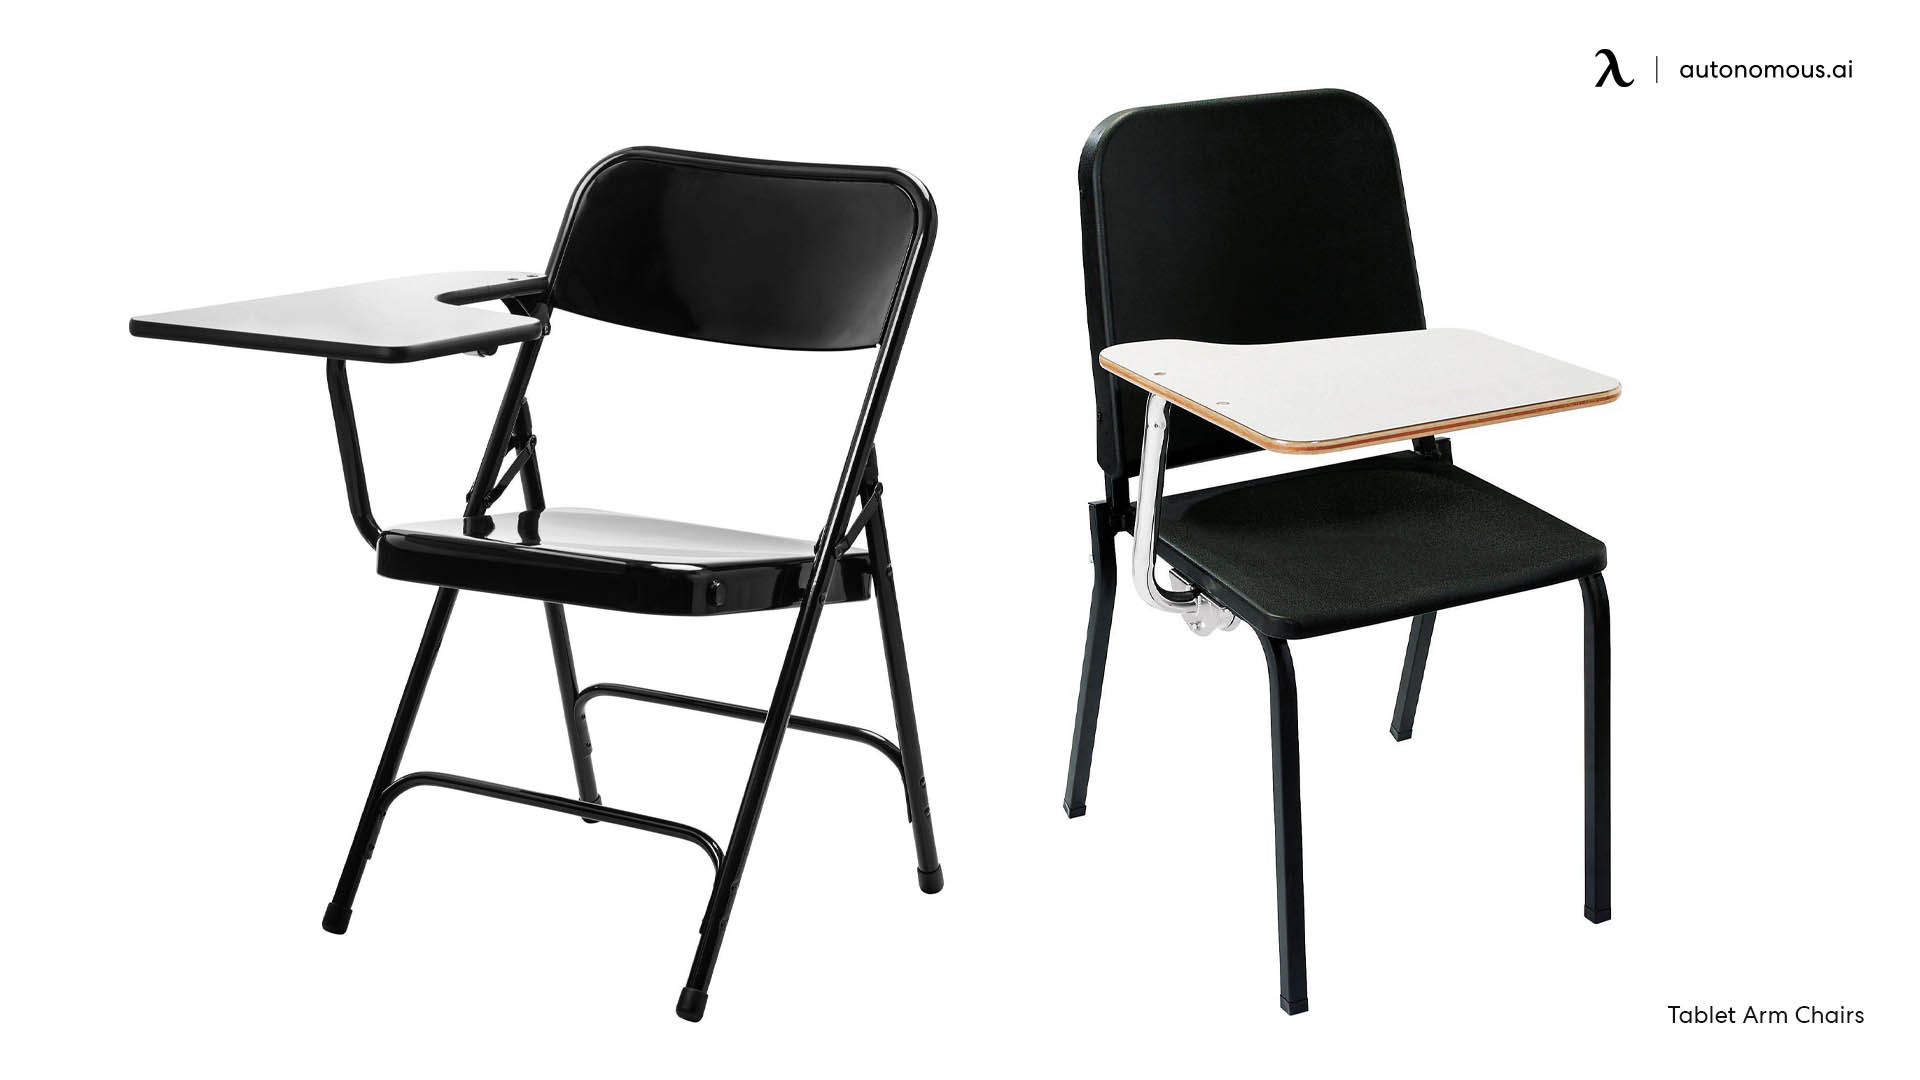 Photo of Tablet Arm Chairs